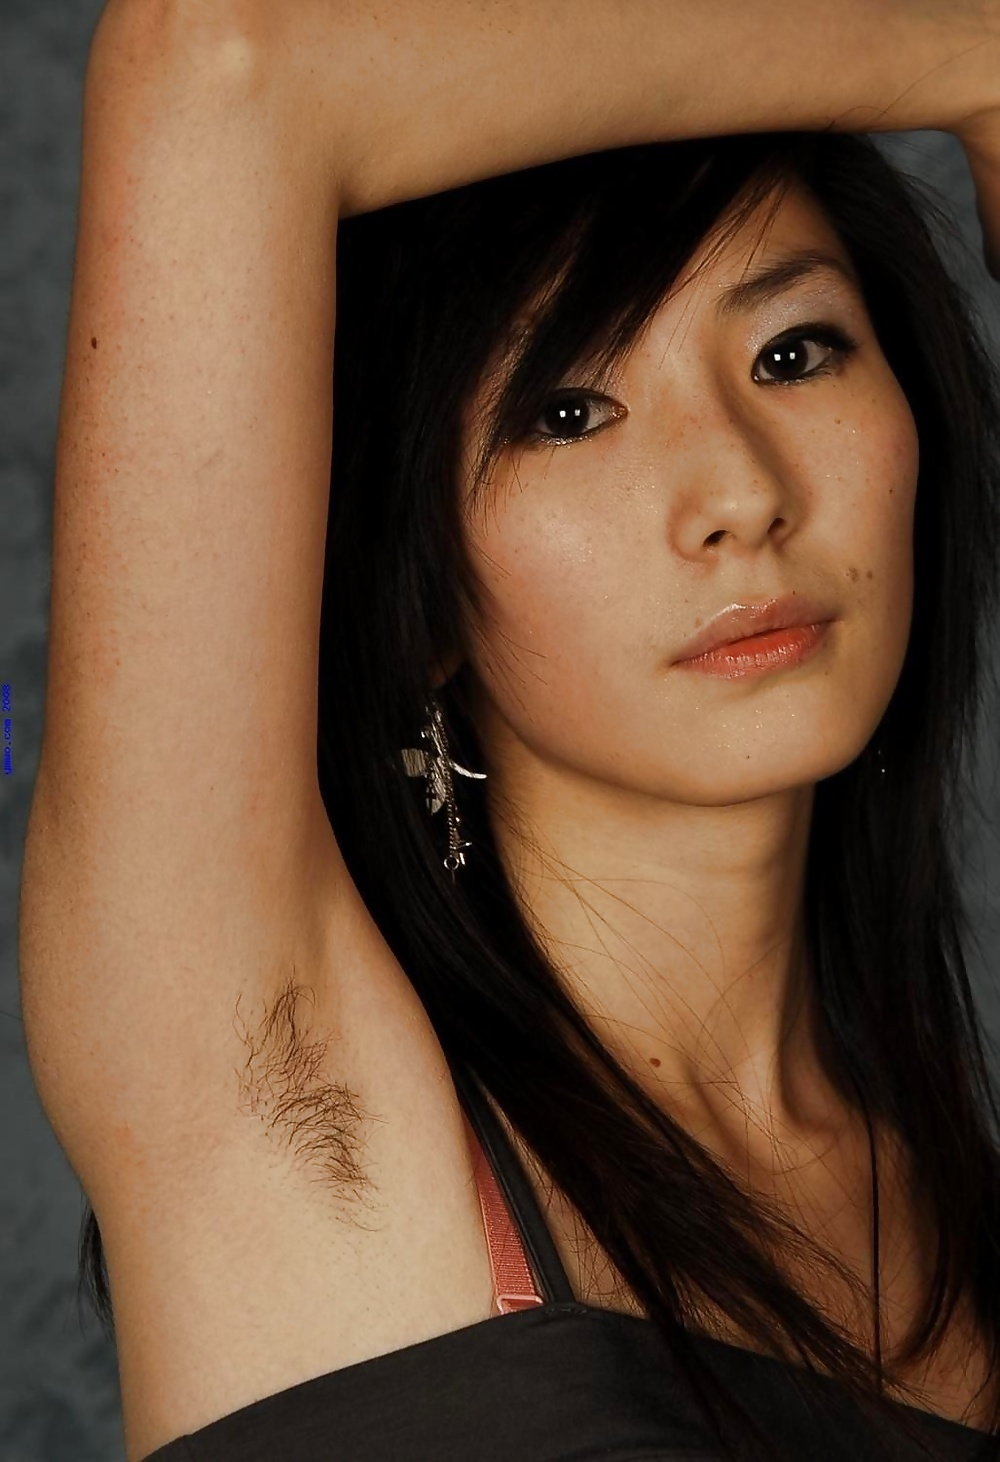 Armpit hair selfies are taking over chinese social media